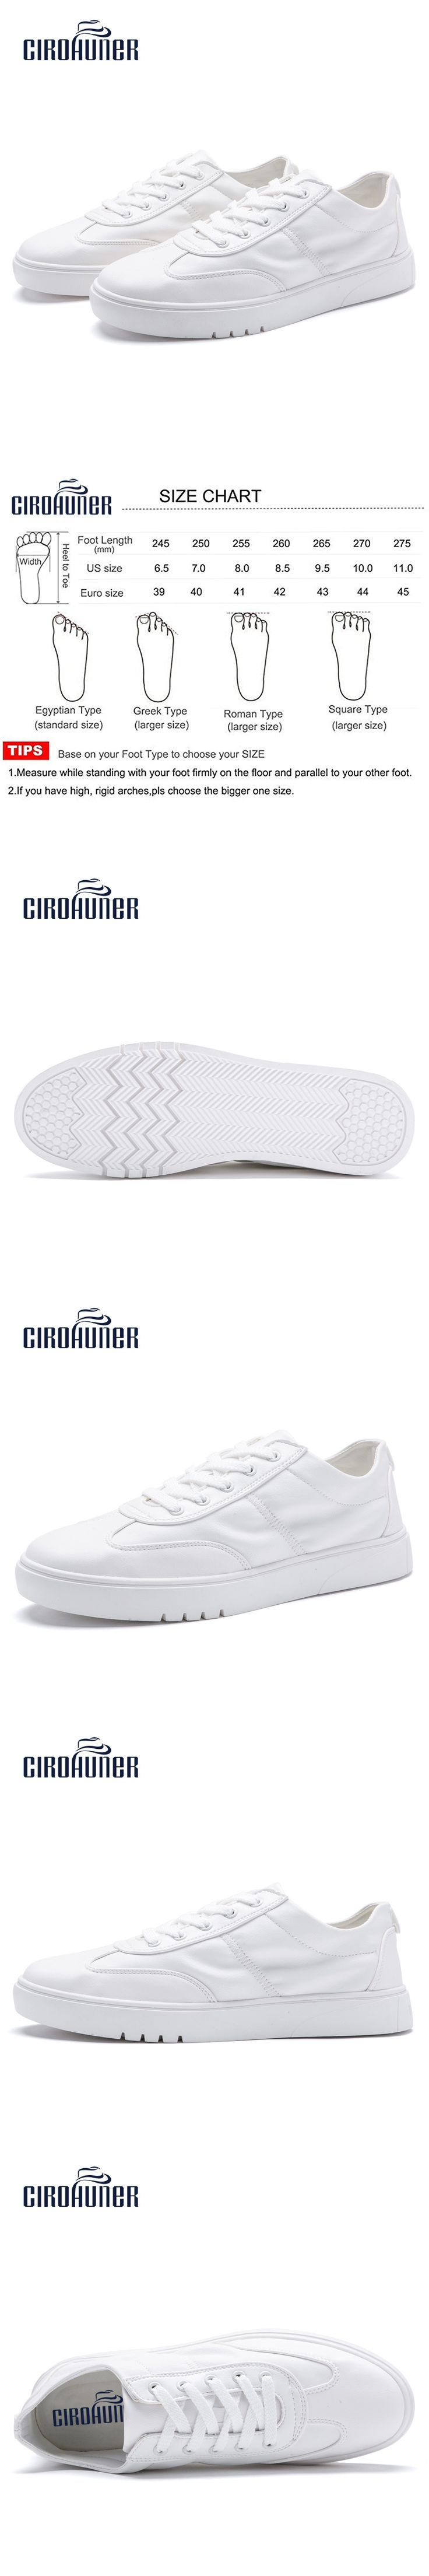 and shoes sneakers standing men travel top best comfortable part for comforter walking women most